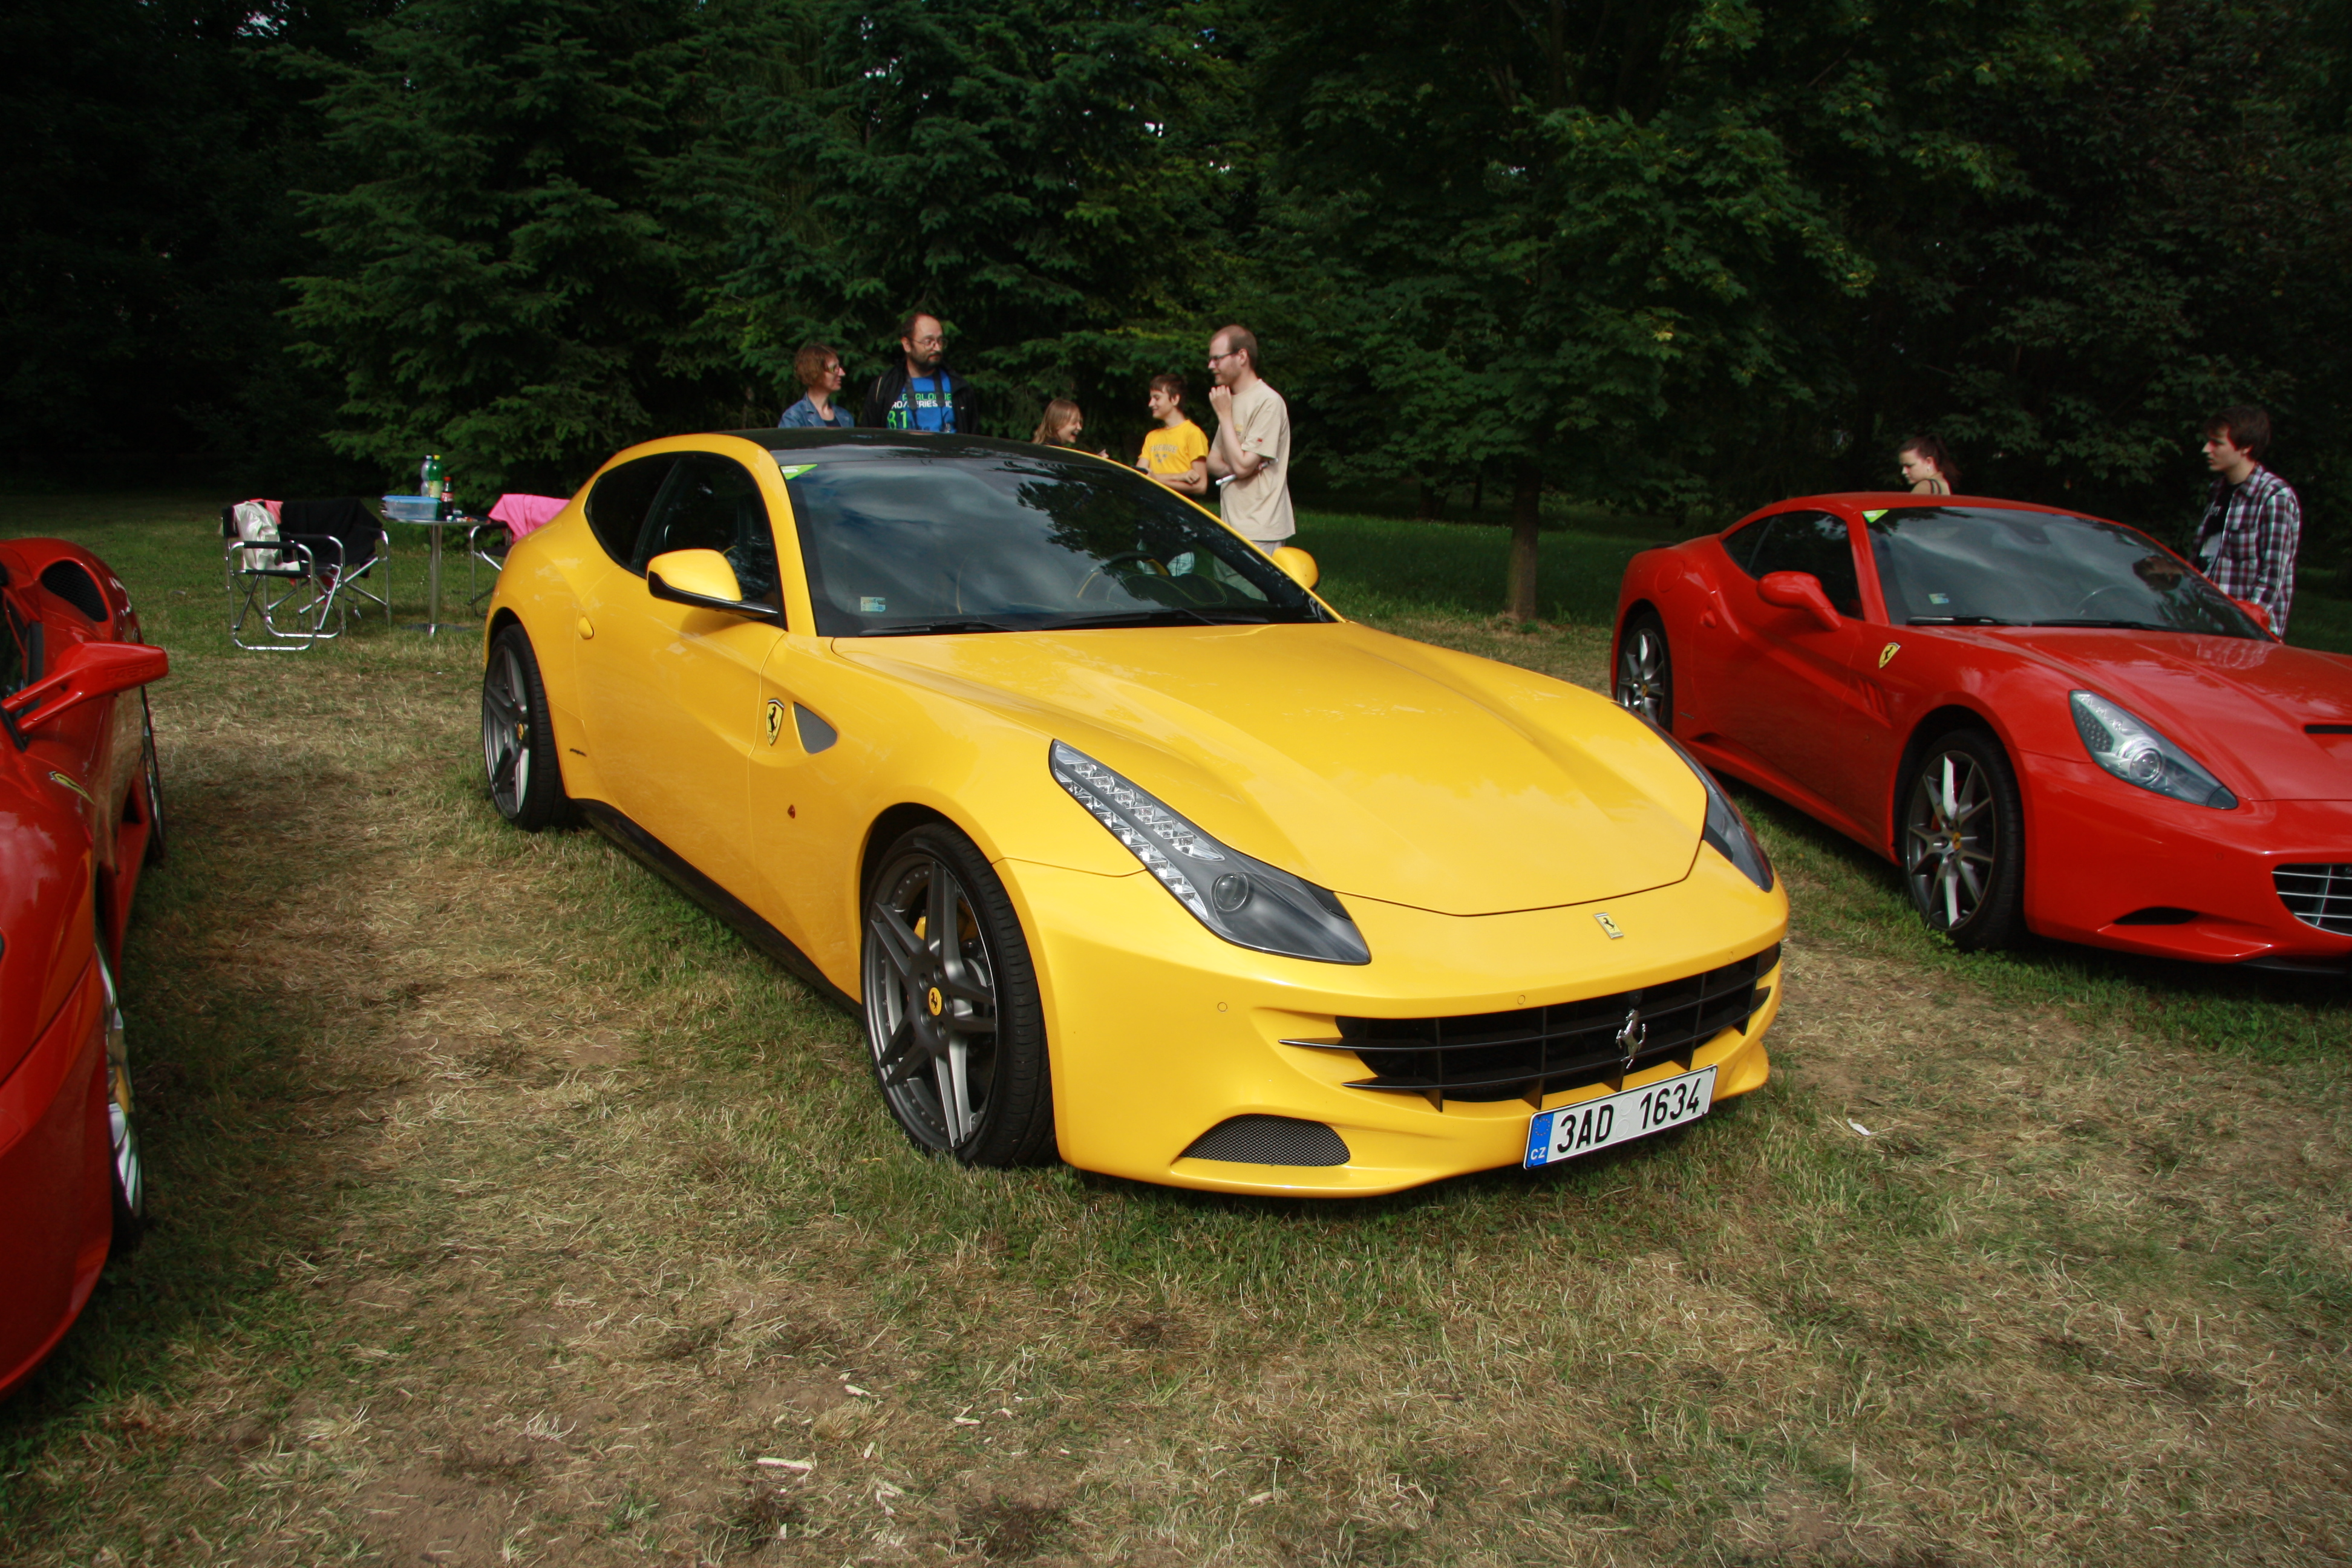 Can You Really Tell The Difference Between Ferrari And Lamborghini California Fuse Box Playbuzz